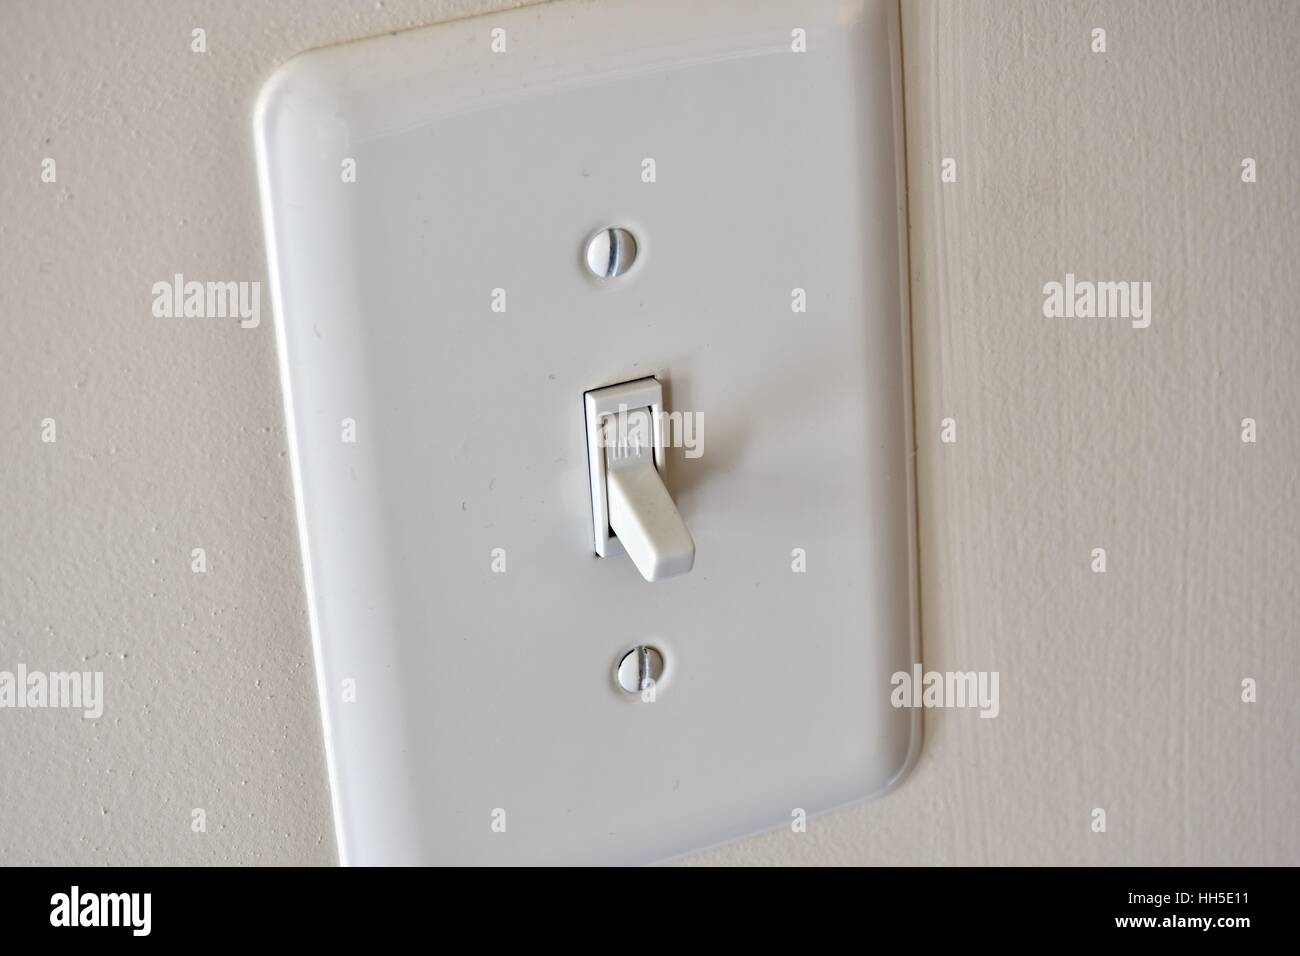 A light switch in a residential home - Stock Image